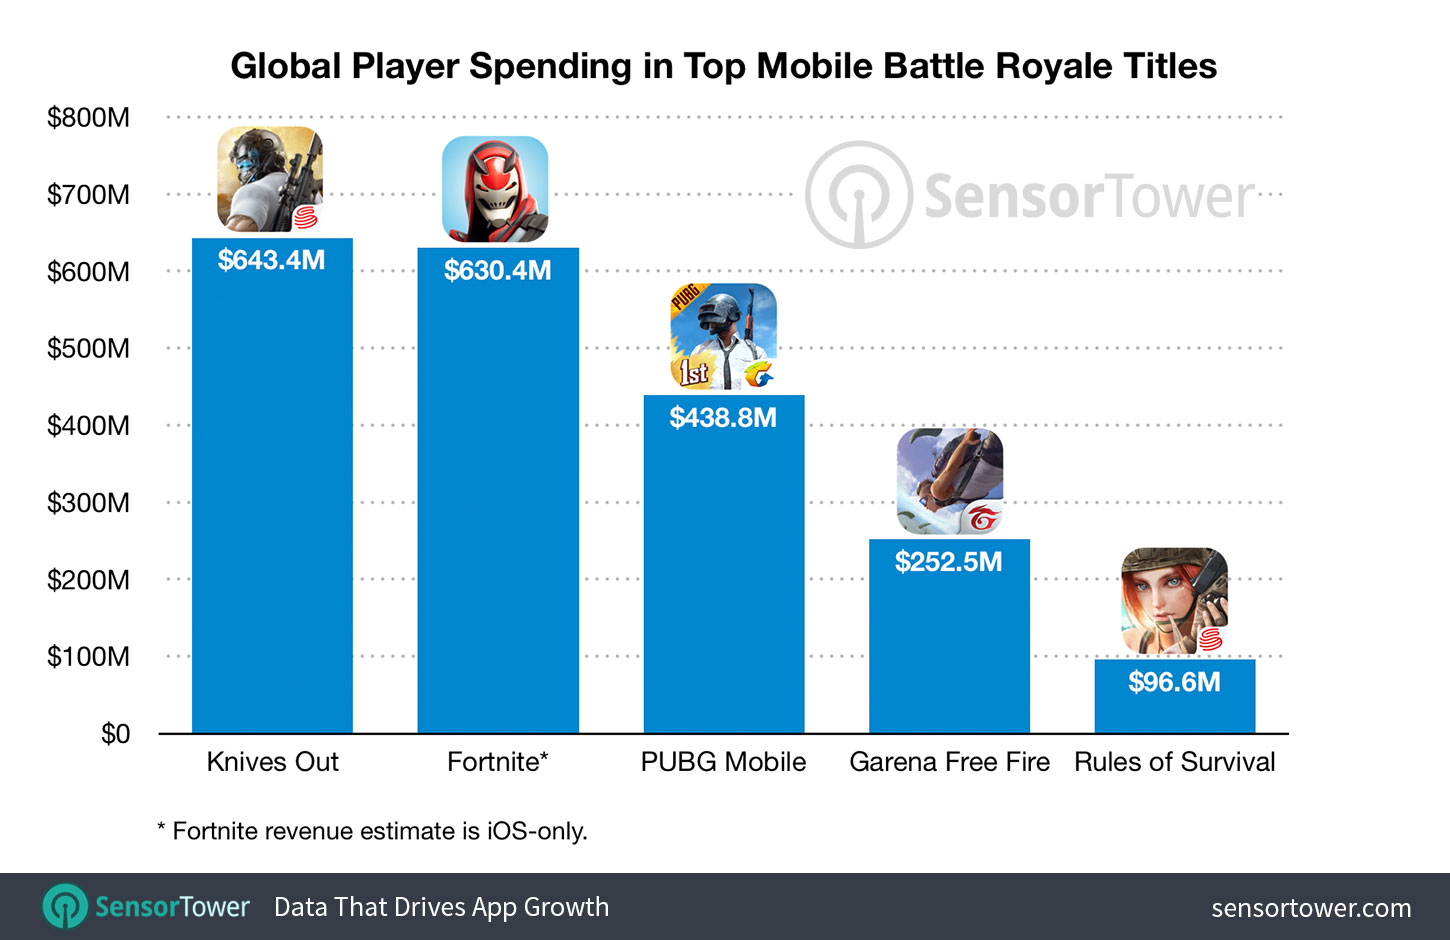 Mobile Battle Royale